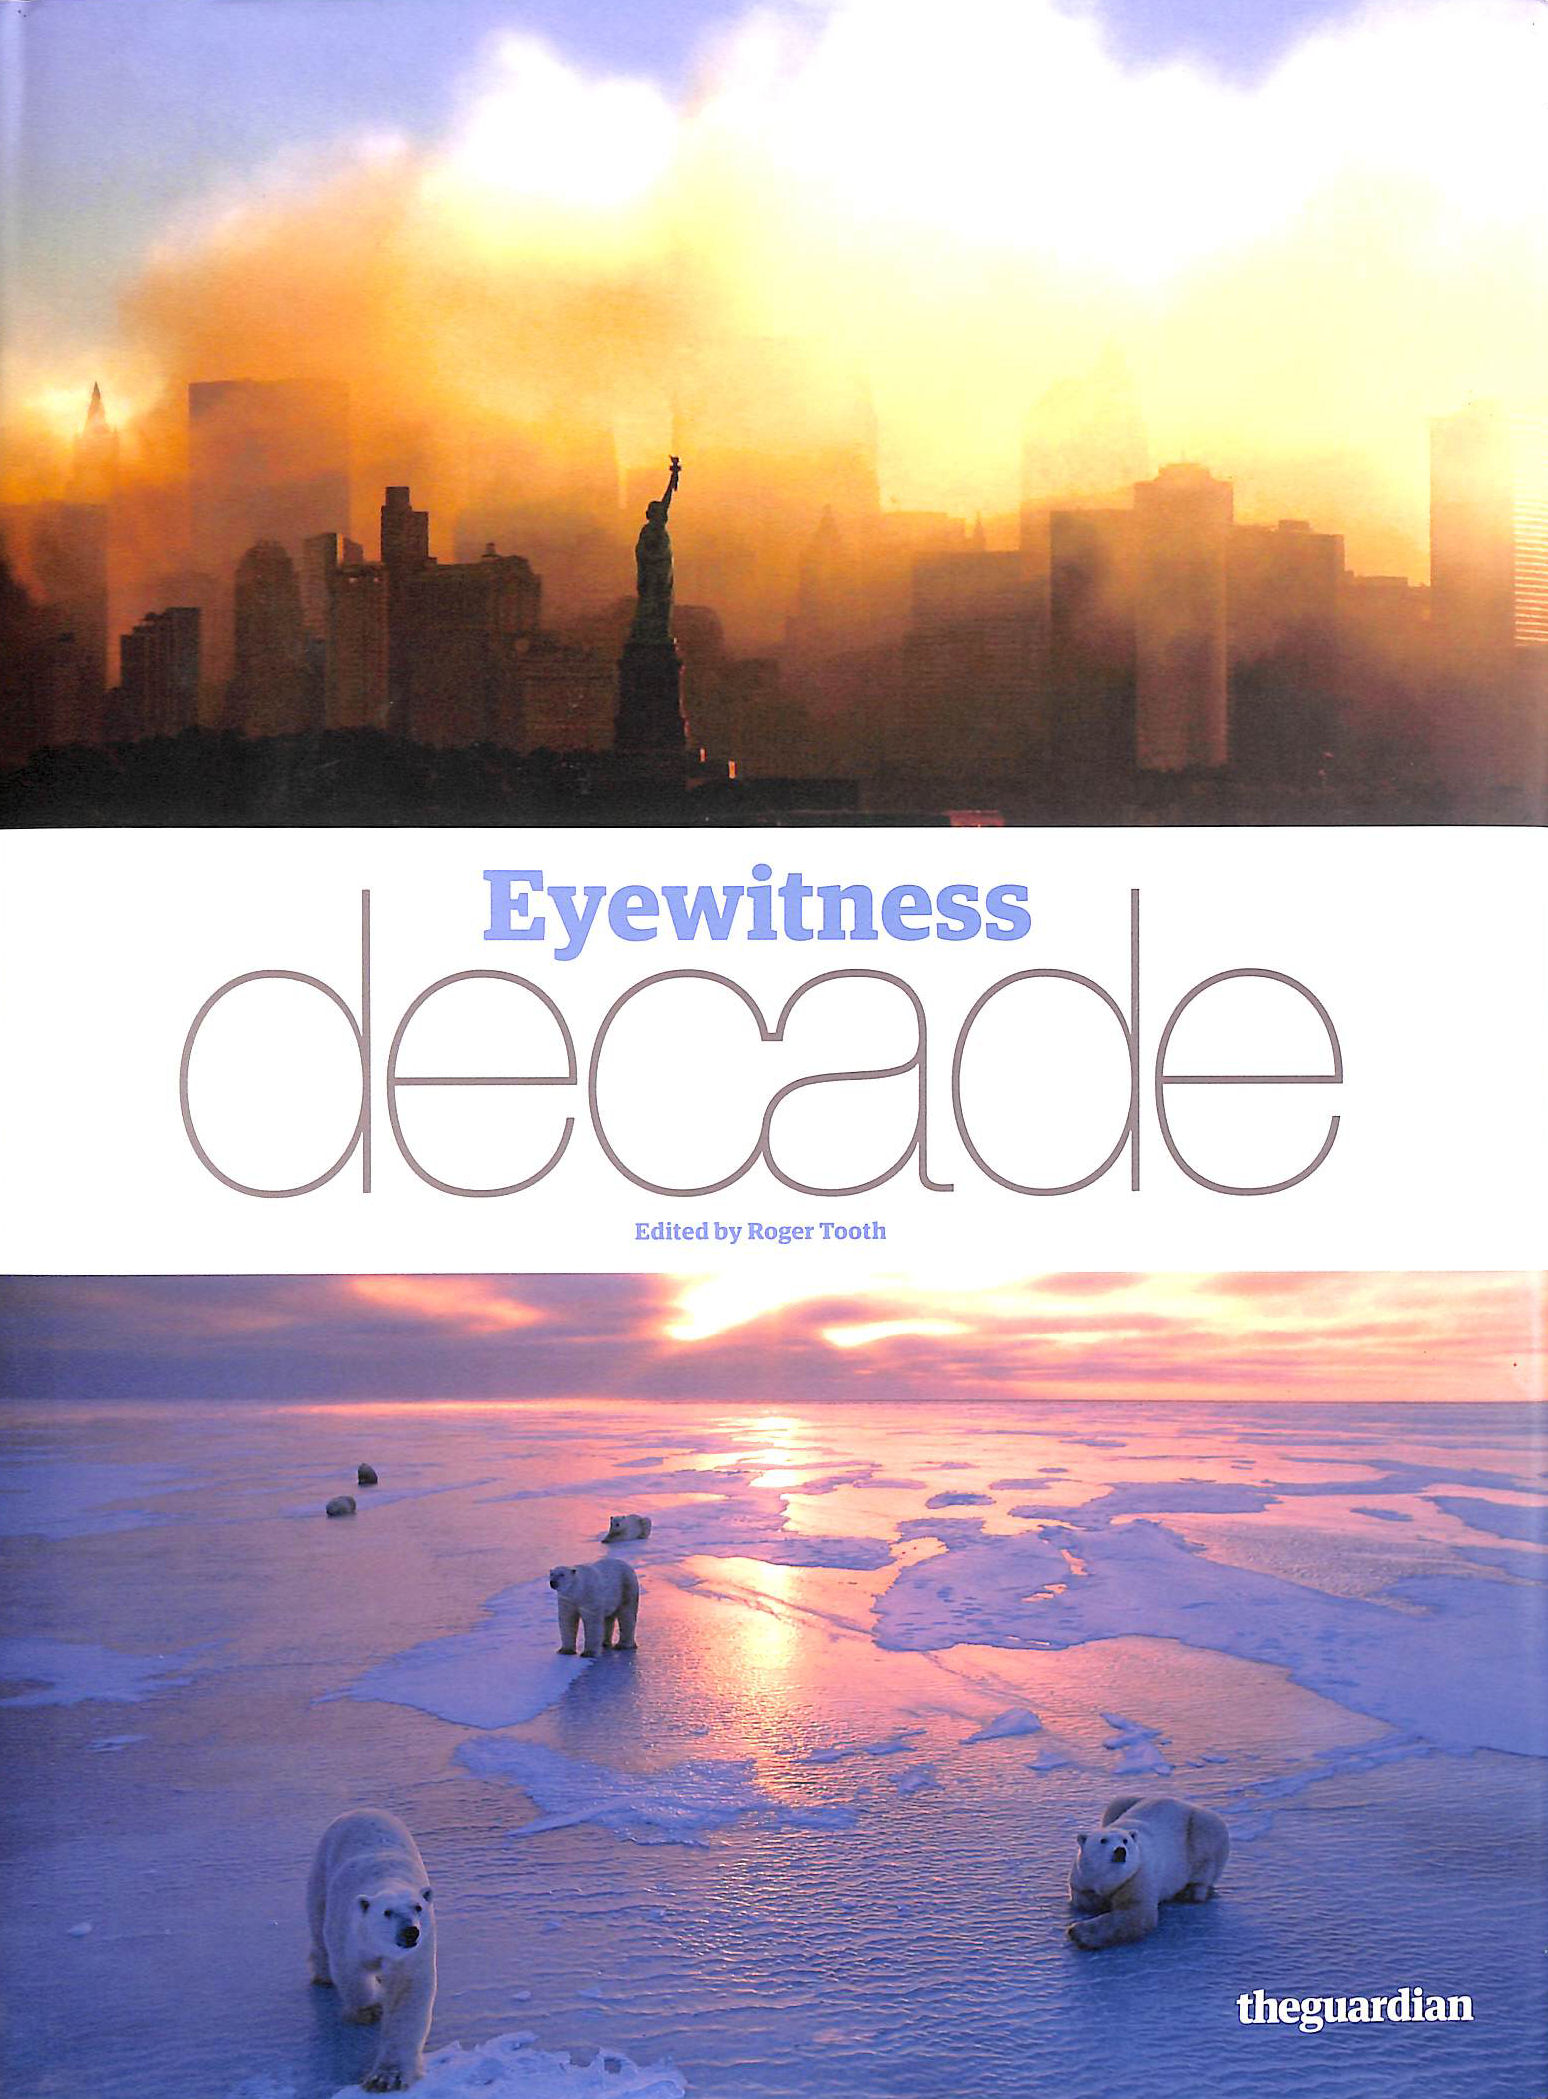 Image for Eyewitness Decade